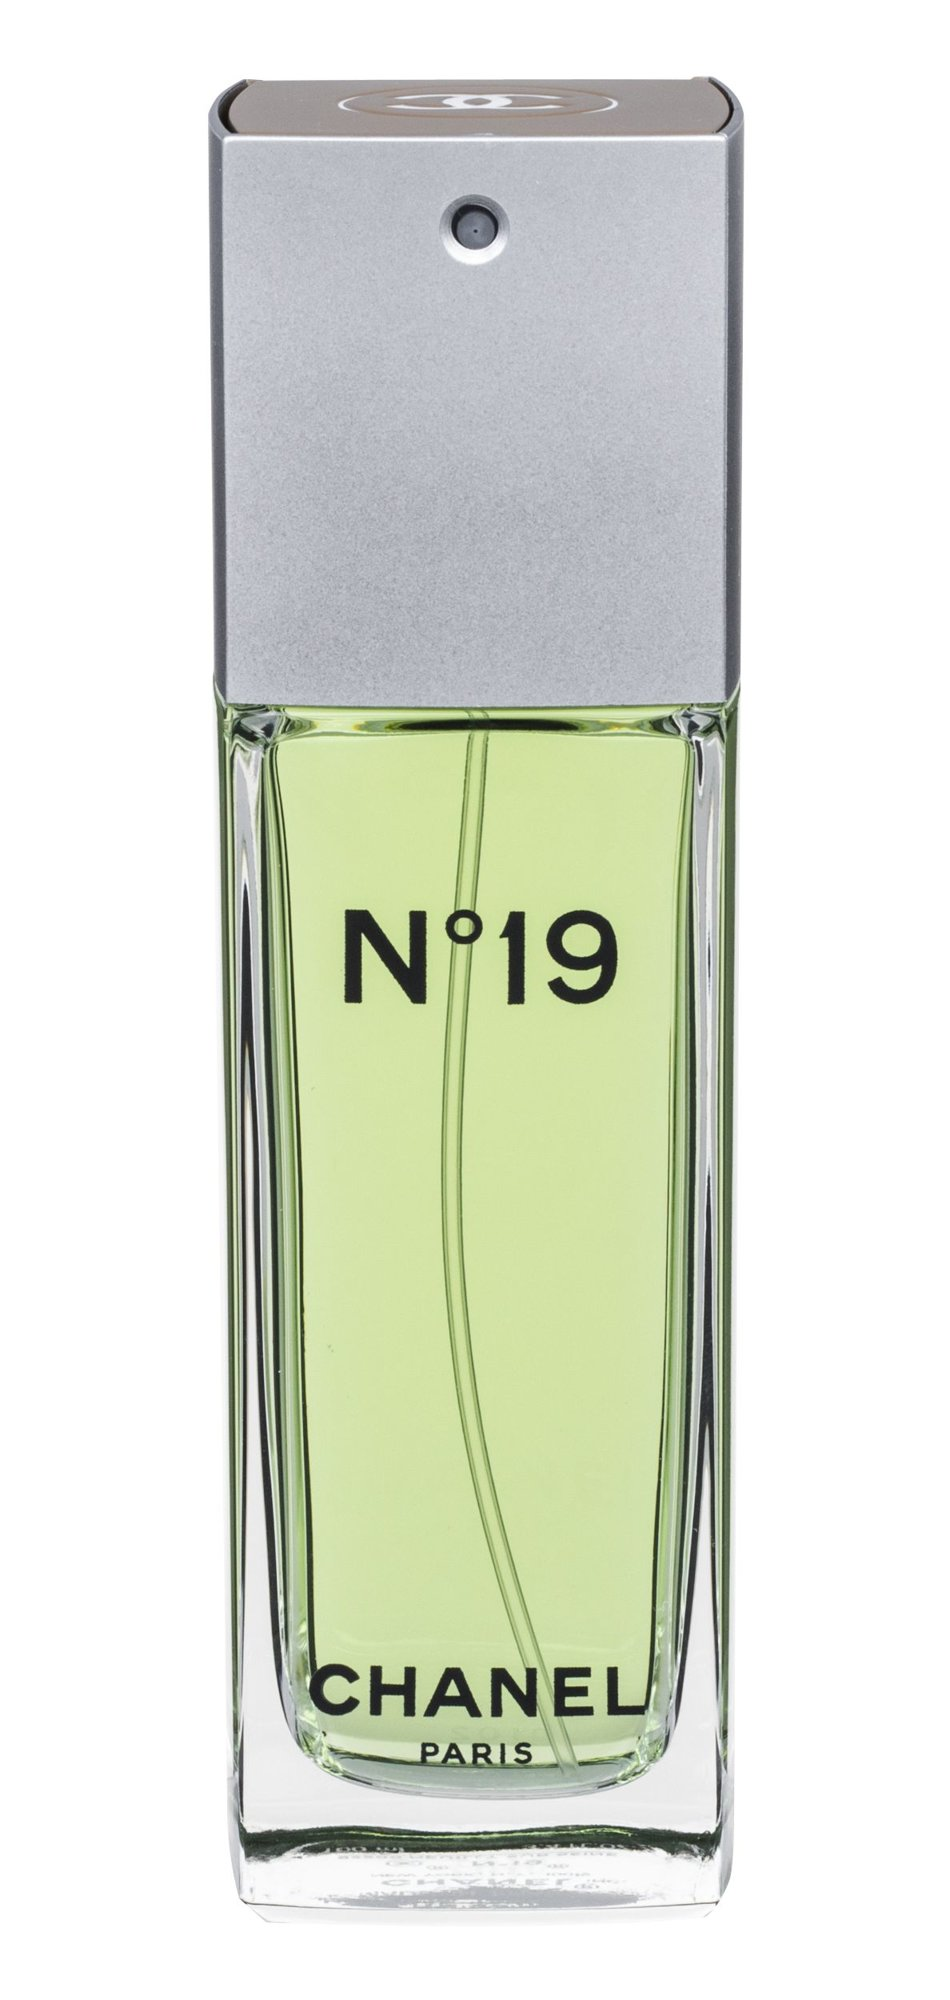 Chanel No. 19 EDT 100ml